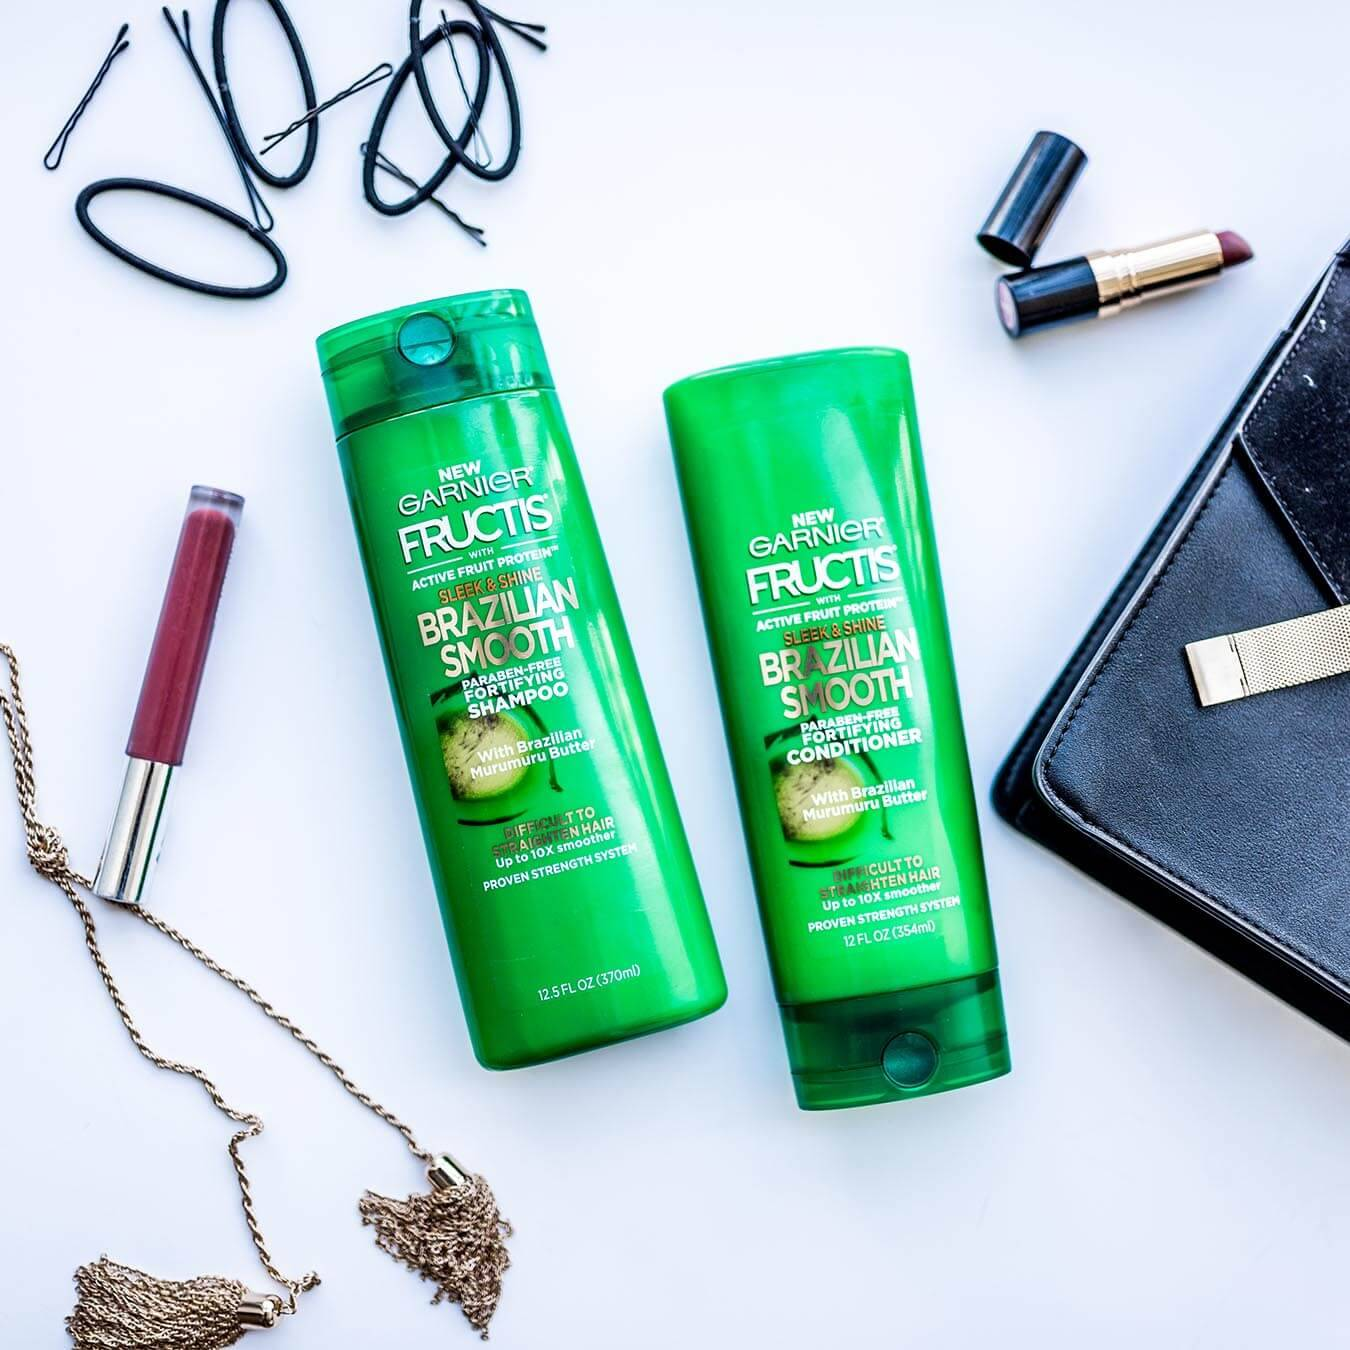 Garnier Fructis Brazilian Smooth Shampoo and Brazilian Smooth Conditioner on a blue background next to a leather purse, an open red lipstick, lip gloss, a knotted metal gold tassel, and several bobby pins and hair ties.